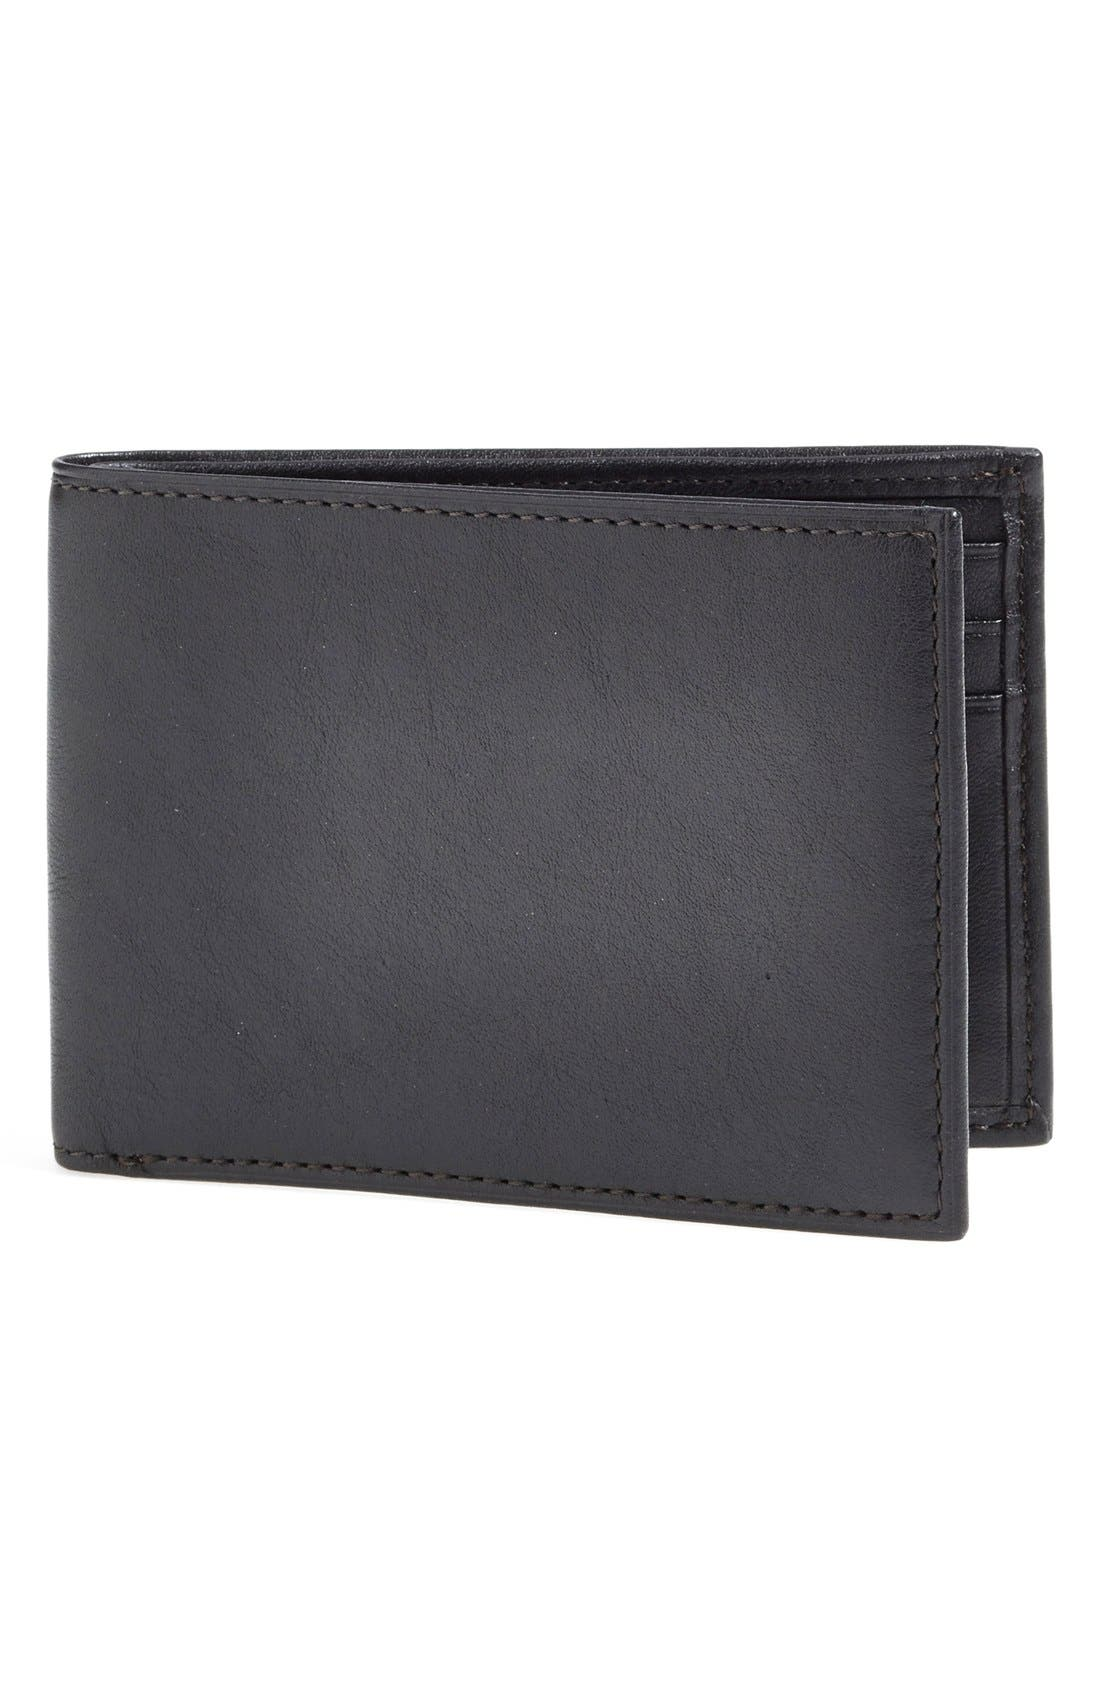 Small Bifold Wallet,                         Main,                         color, Black